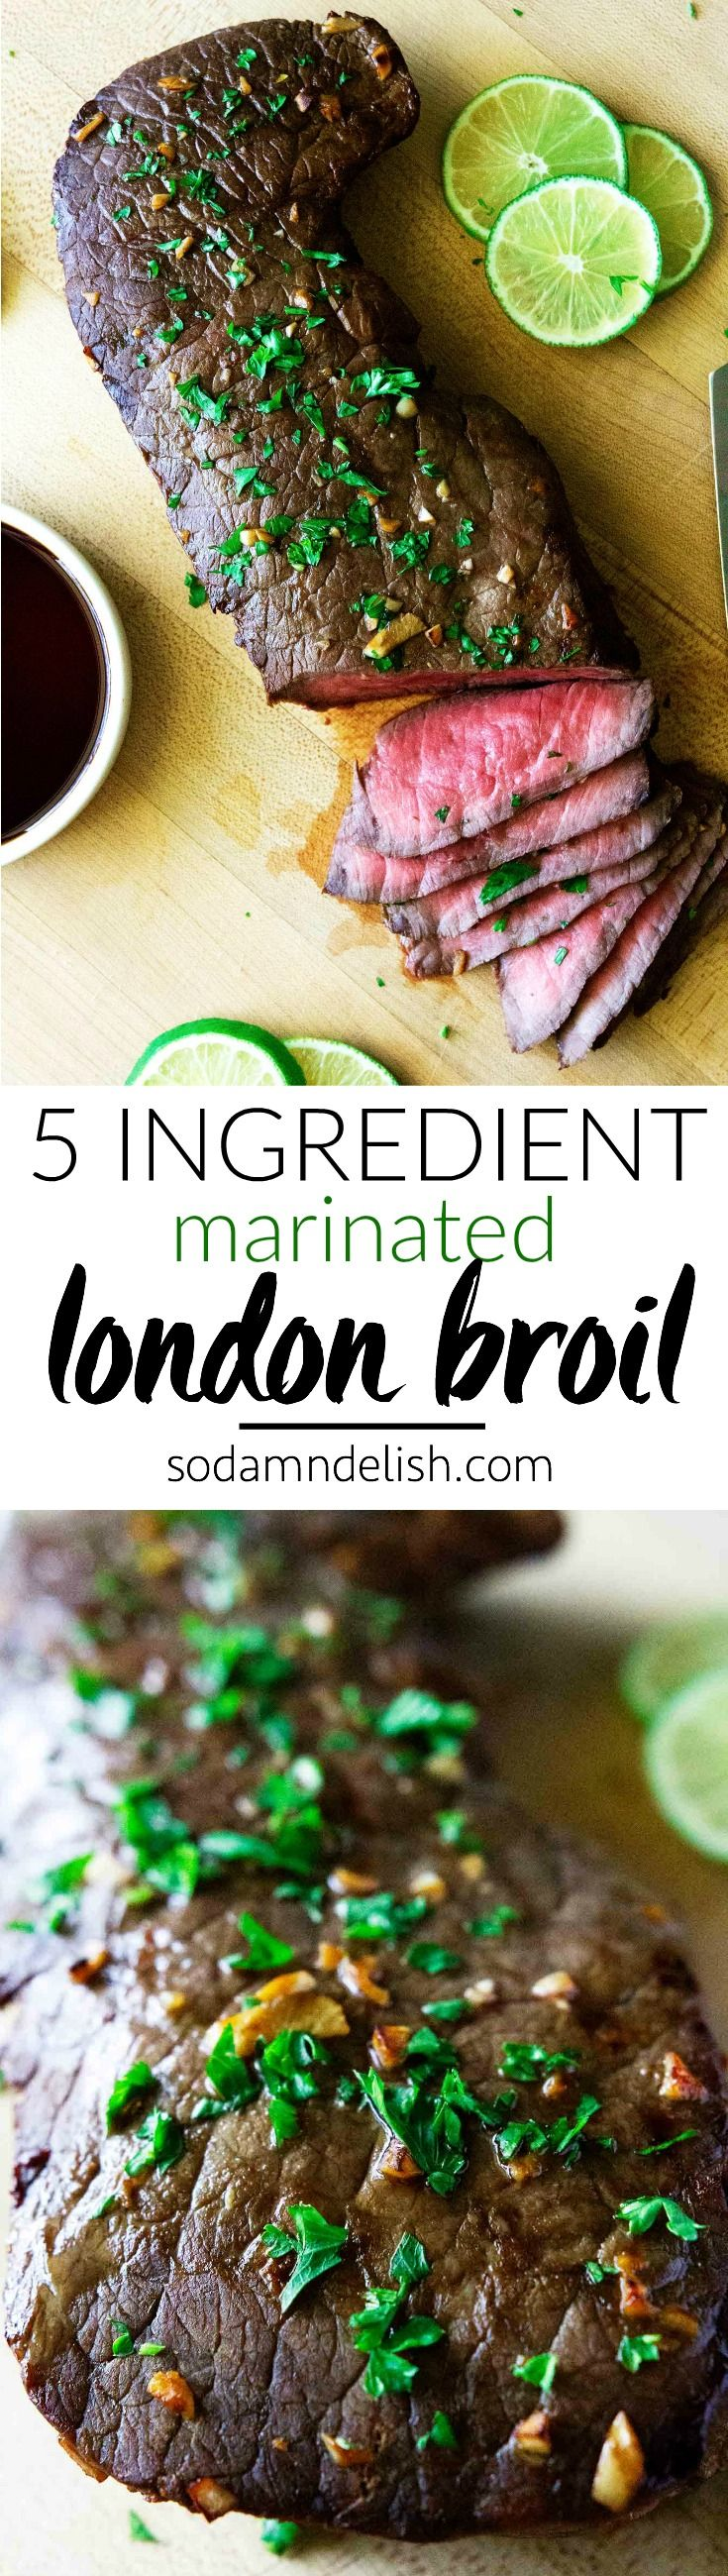 This marinated london broil recipe is so super easy! It has only 5 ingredients and takes under 10 minutes to cook! It's a surefire hit for all steak lovers out there. | #londonbroil #steak #londonbroilmarinade #steakmarinade